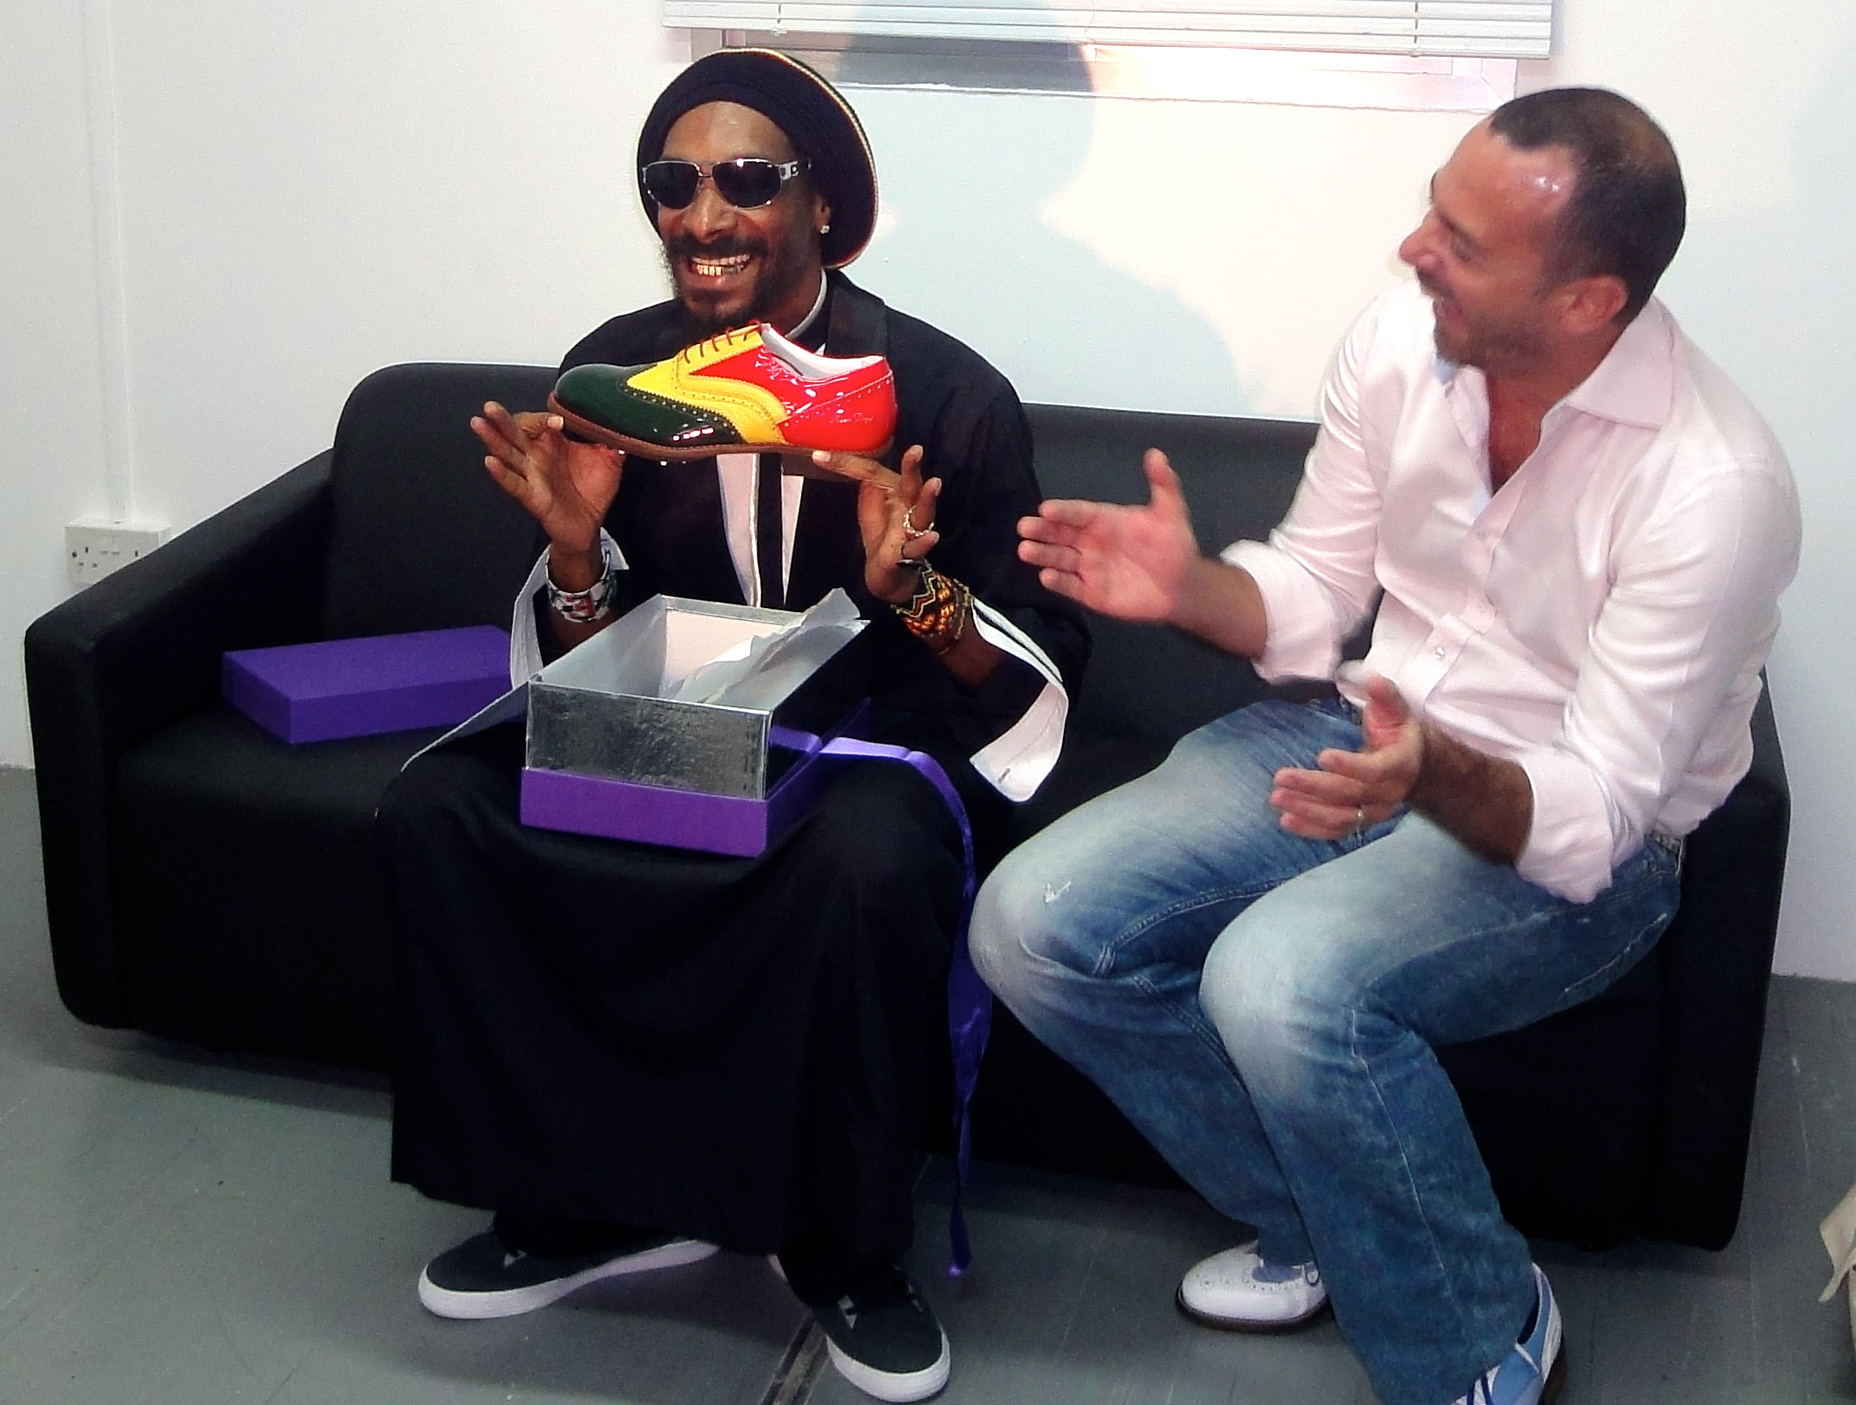 Snoop Dogg and Steven Alexander